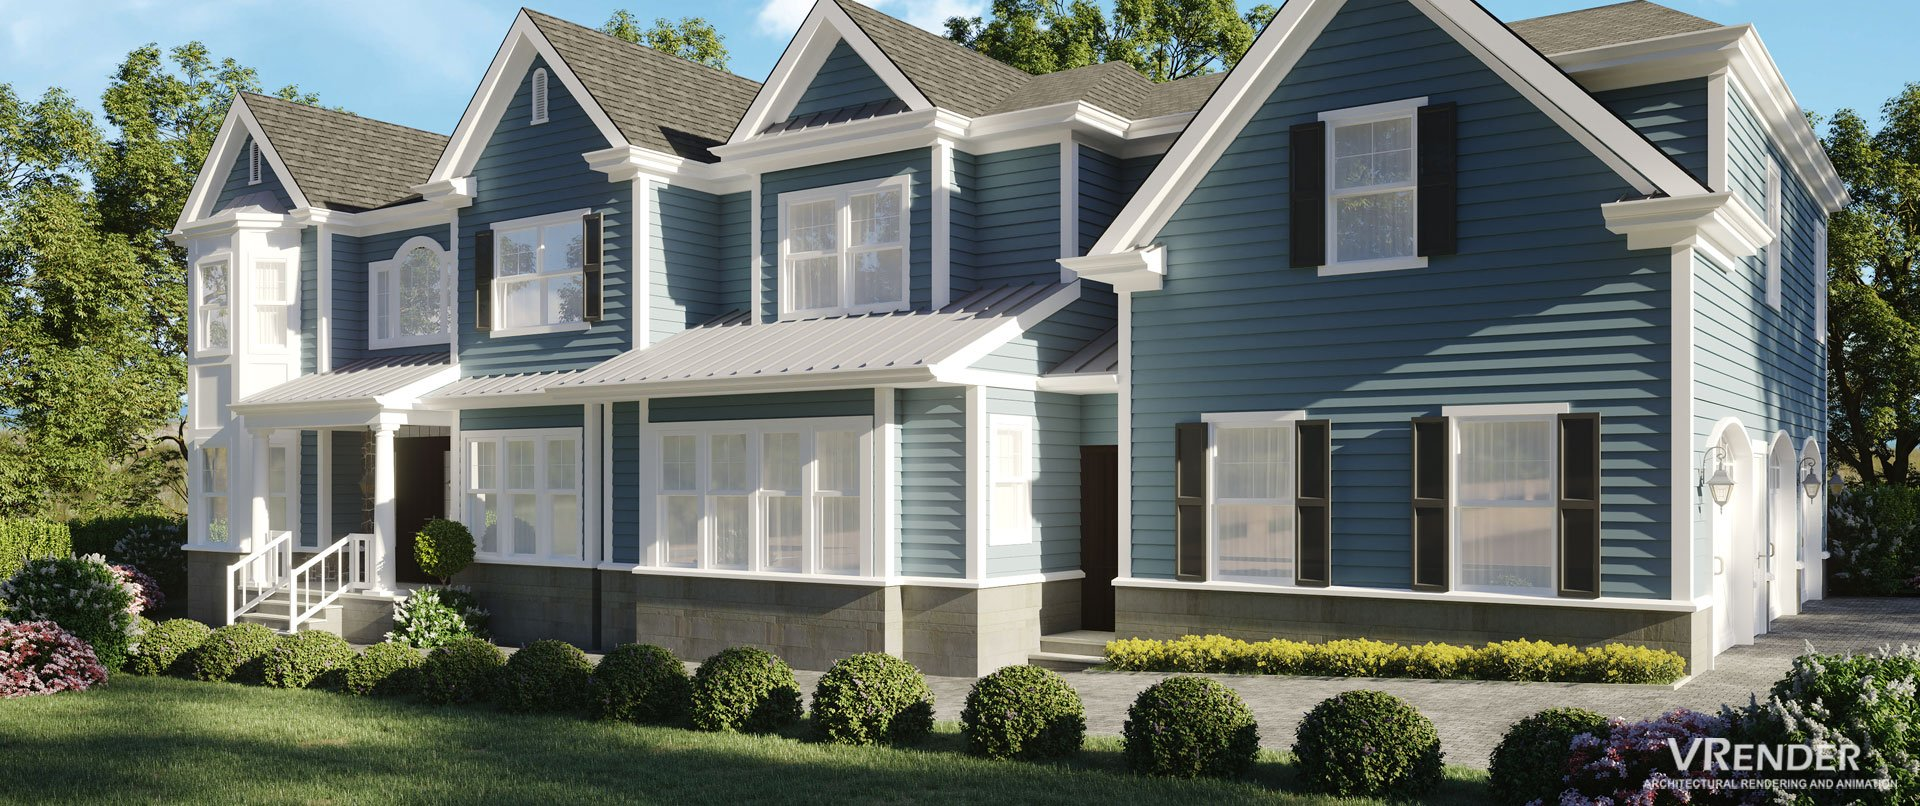 Vrender Architectural 3D rendering Services HD